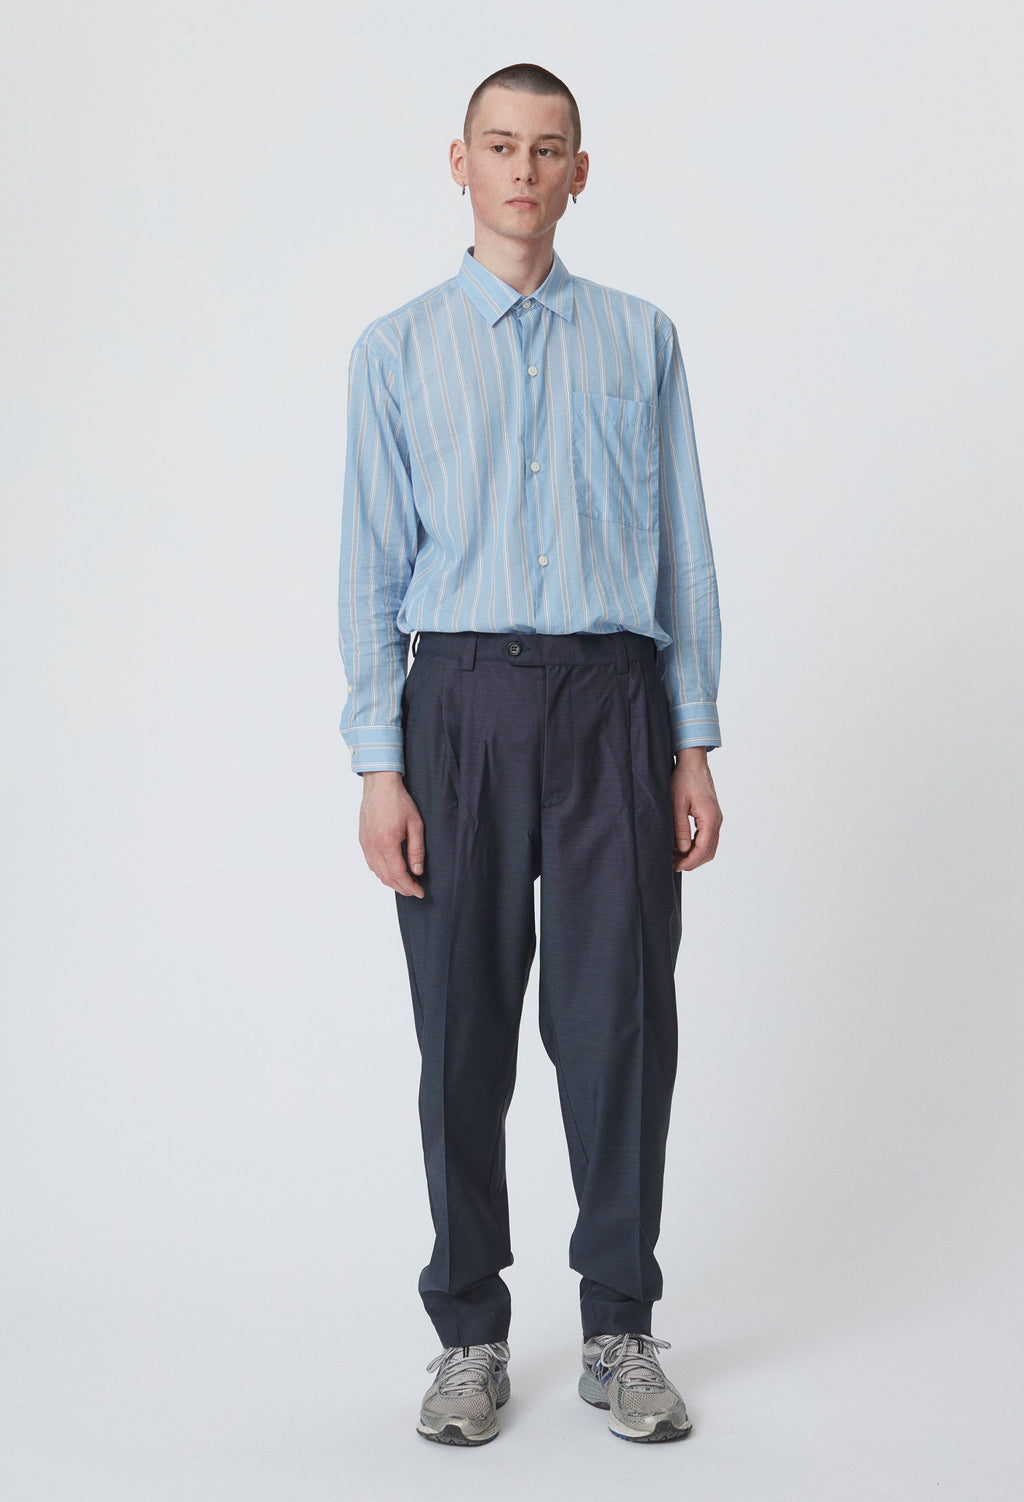 SAEVIO TROUSERS - MIDNIGHT GREY